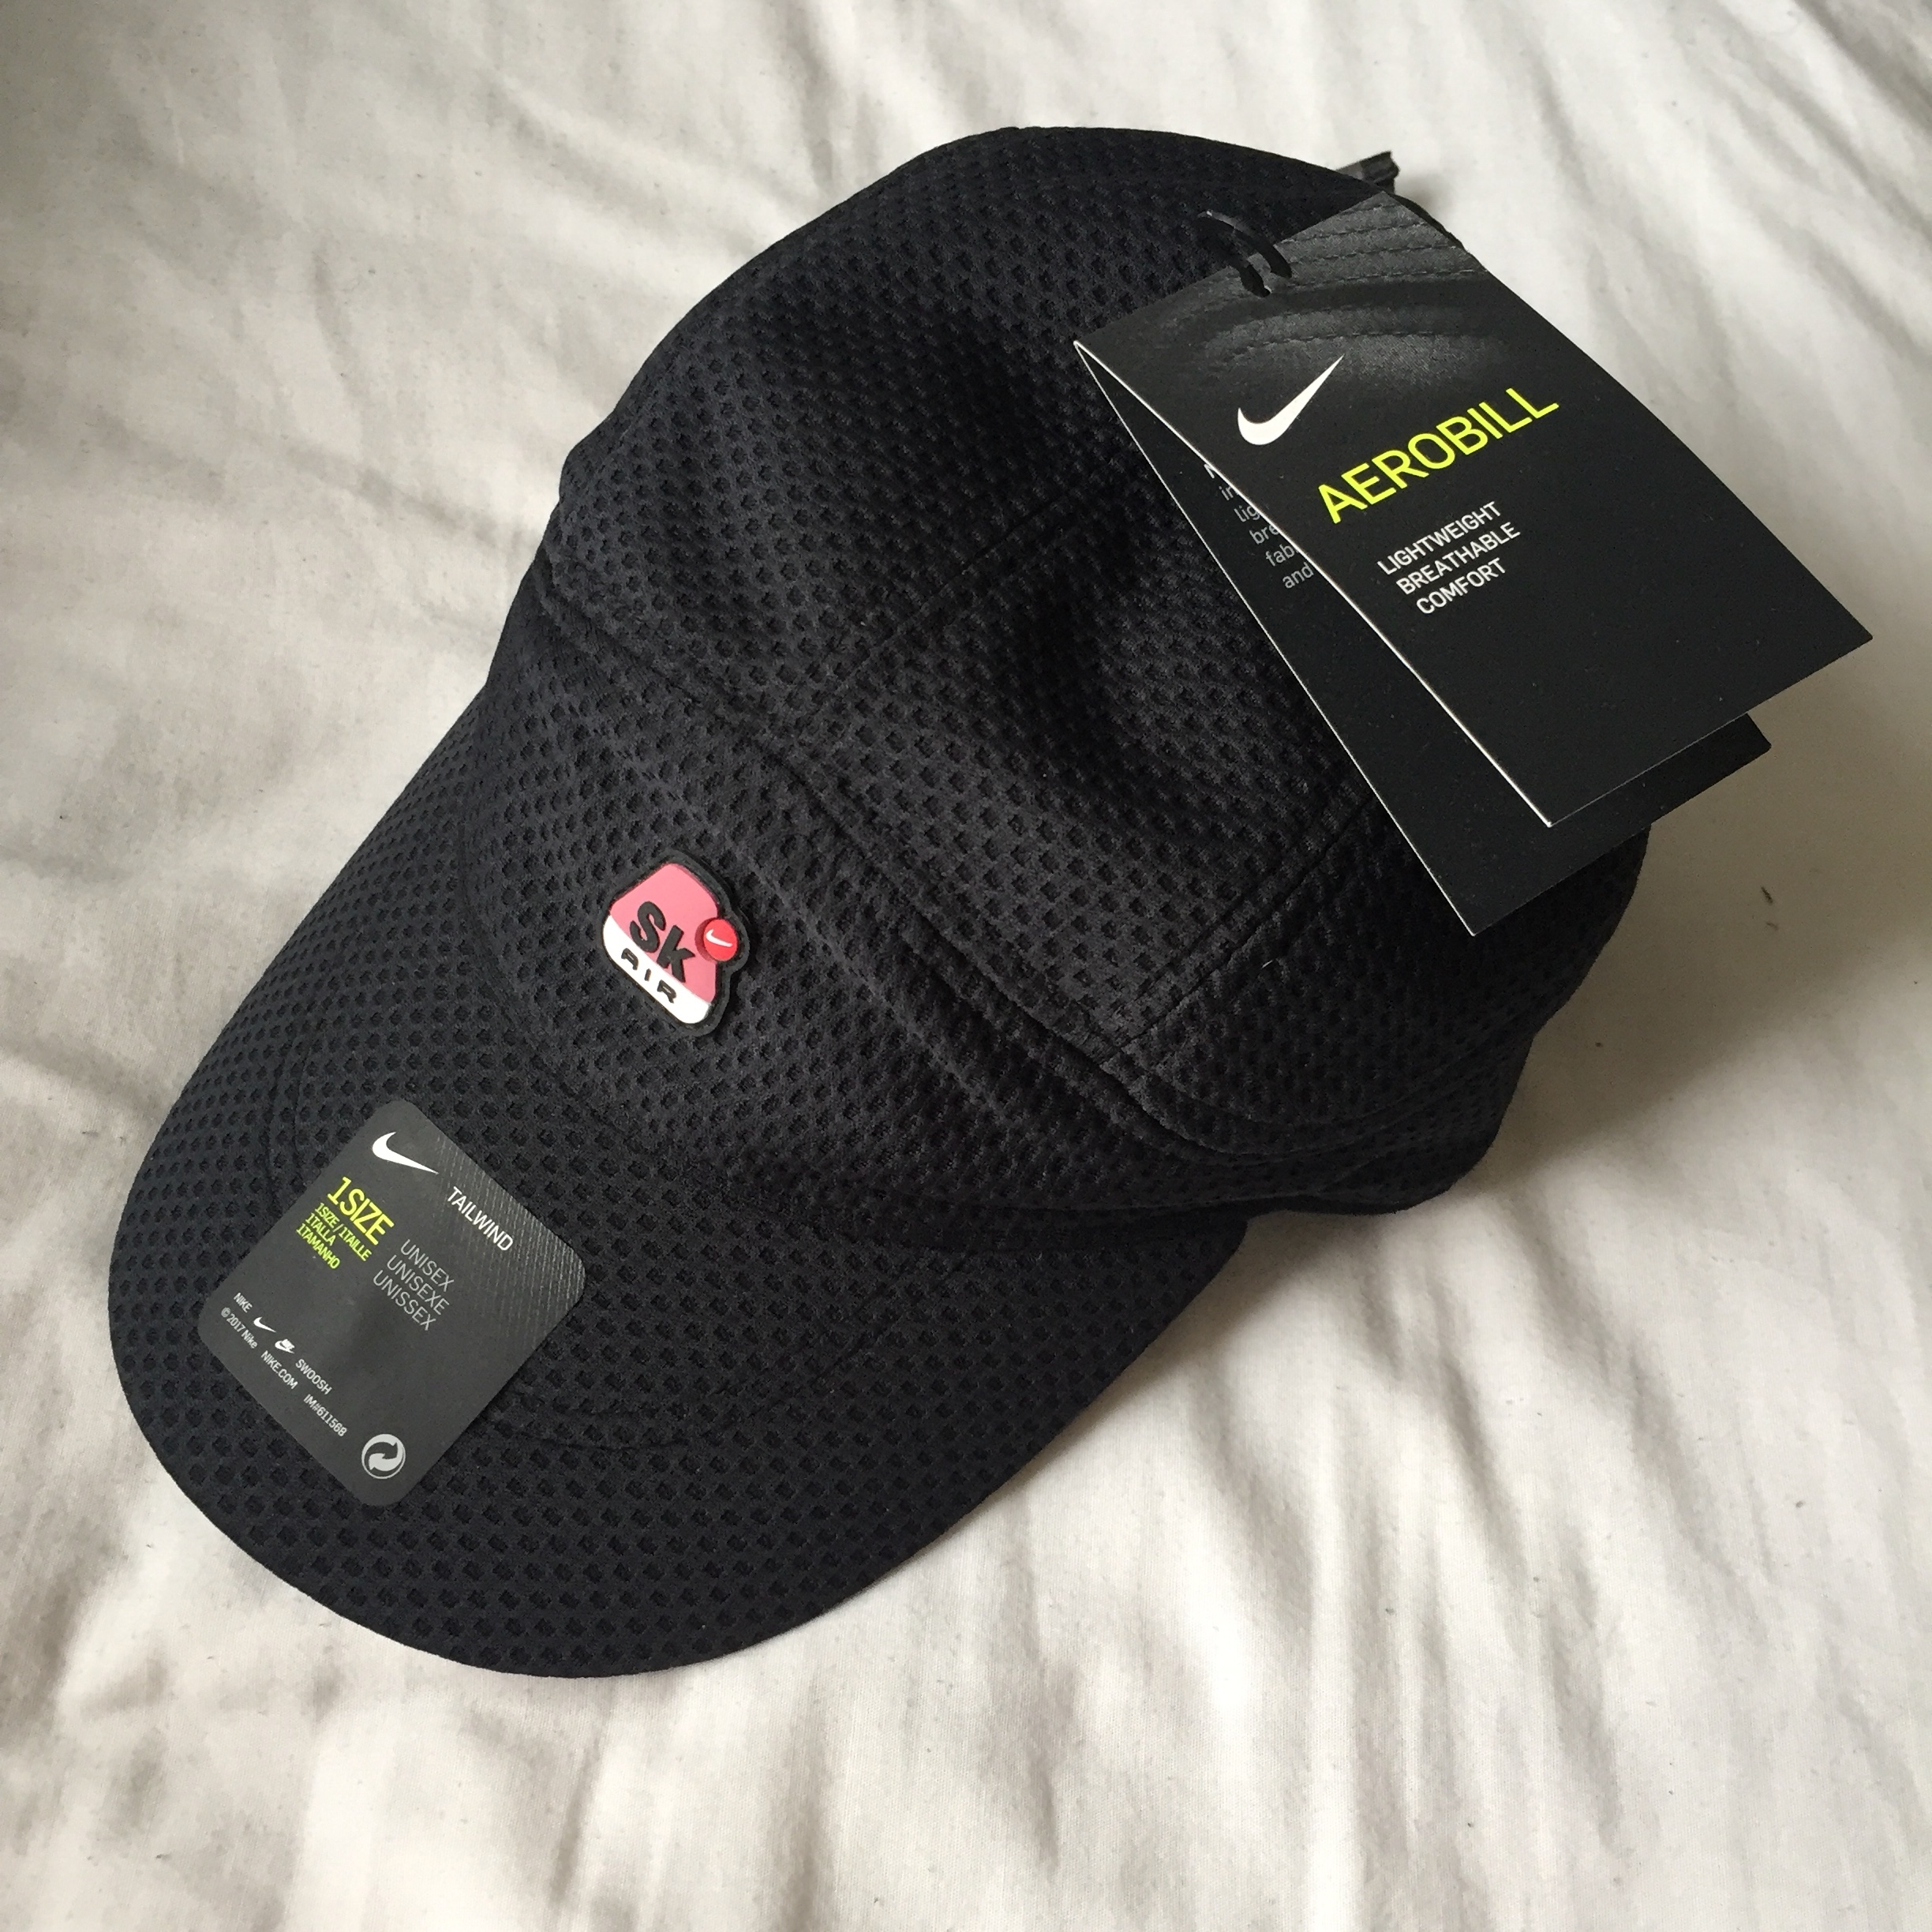 49bc6f011 Skepta x Nike sk Air cap • only 250 of these were... - Depop